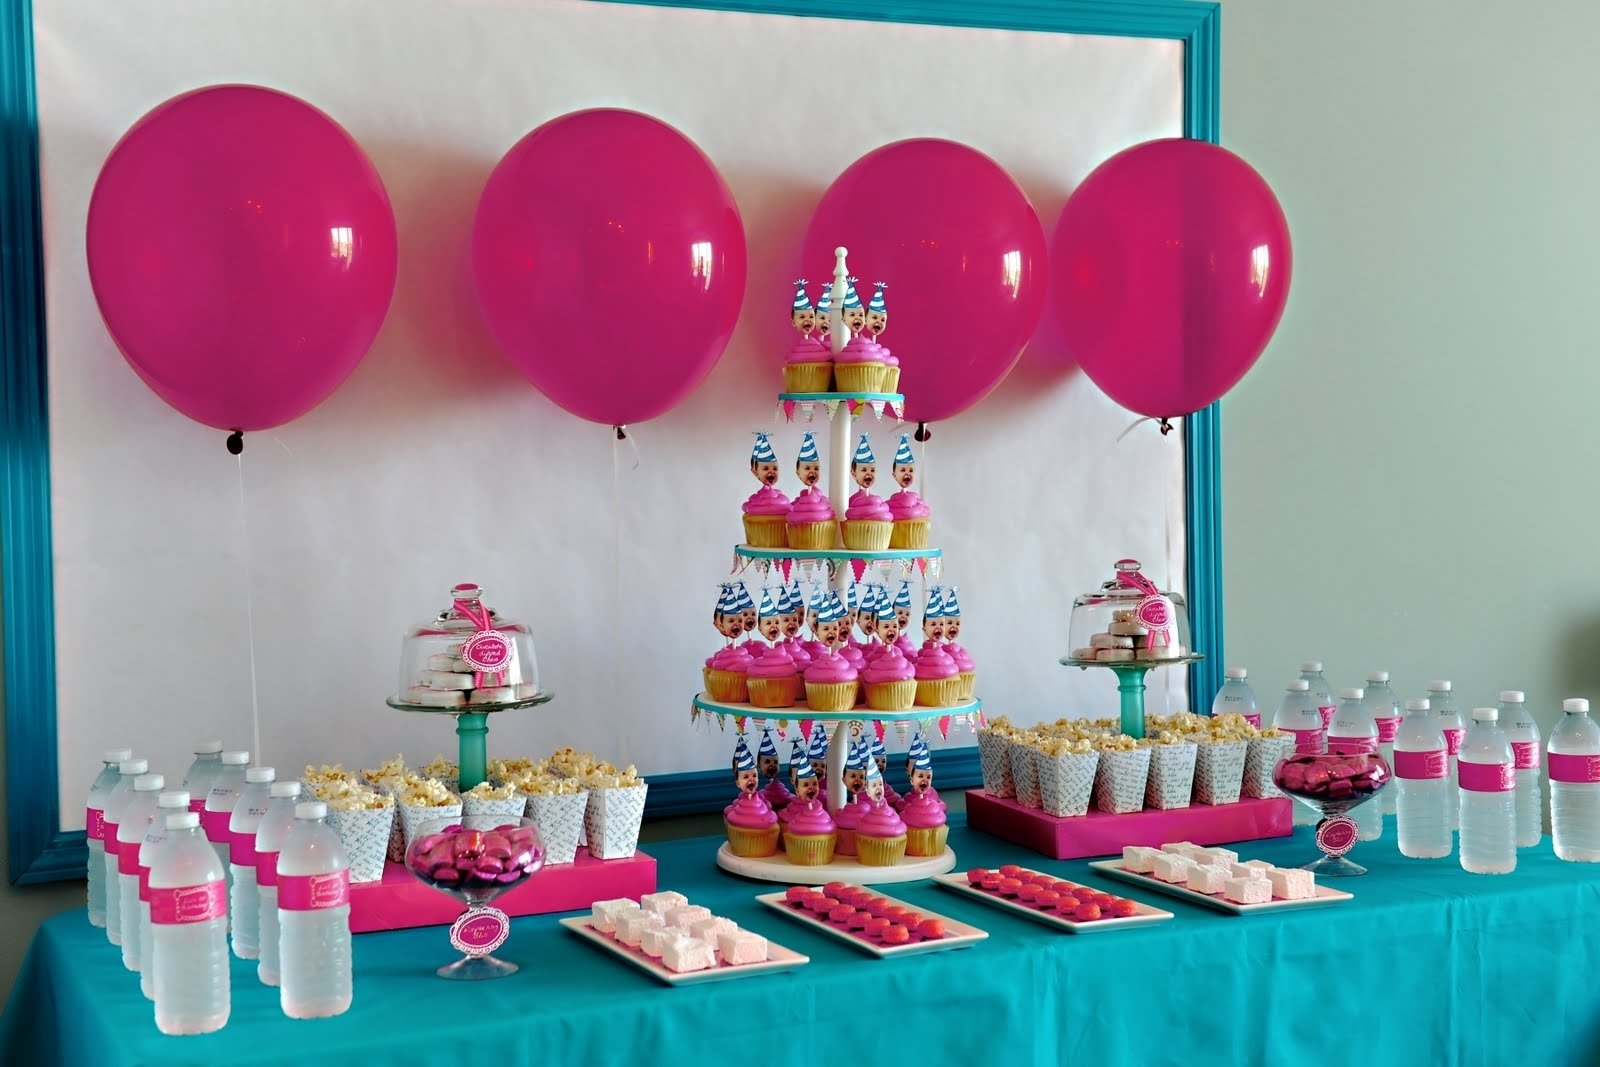 10 Great 2 Yr Old Birthday Party Ideas themes birthday a 2 year old birthday party ideas with 2 year old 4 2020